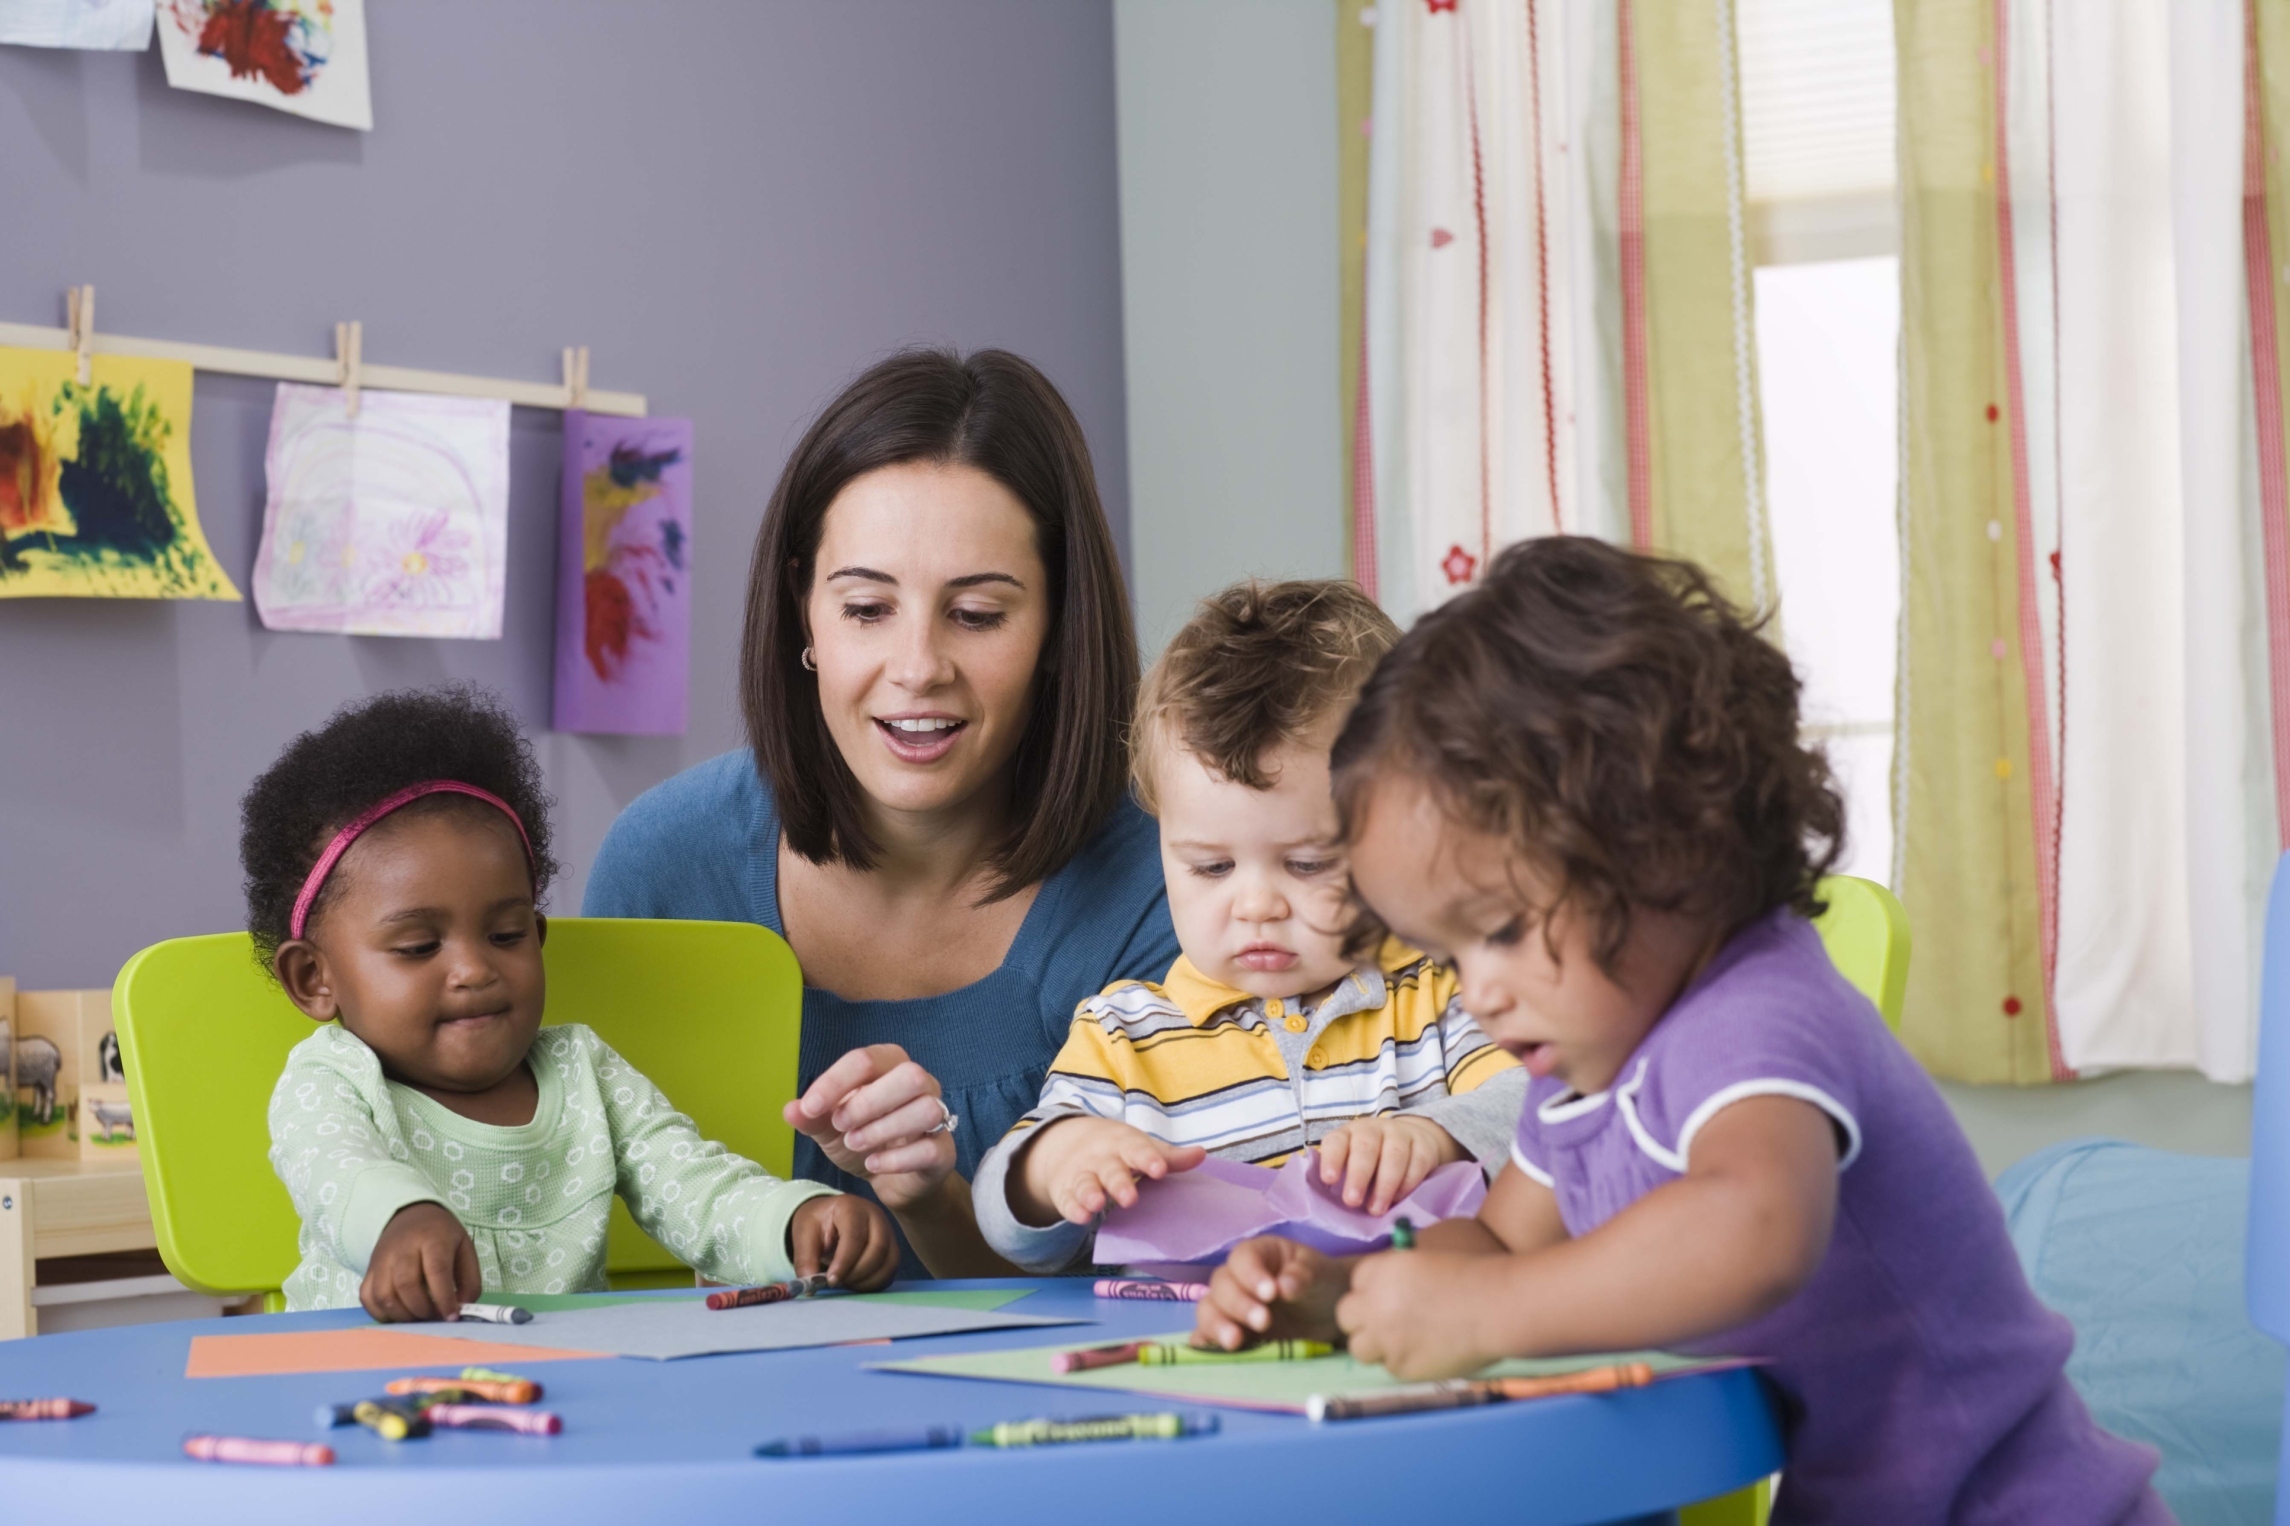 Dress Code, Policies & Procedures in an Early-Childhood